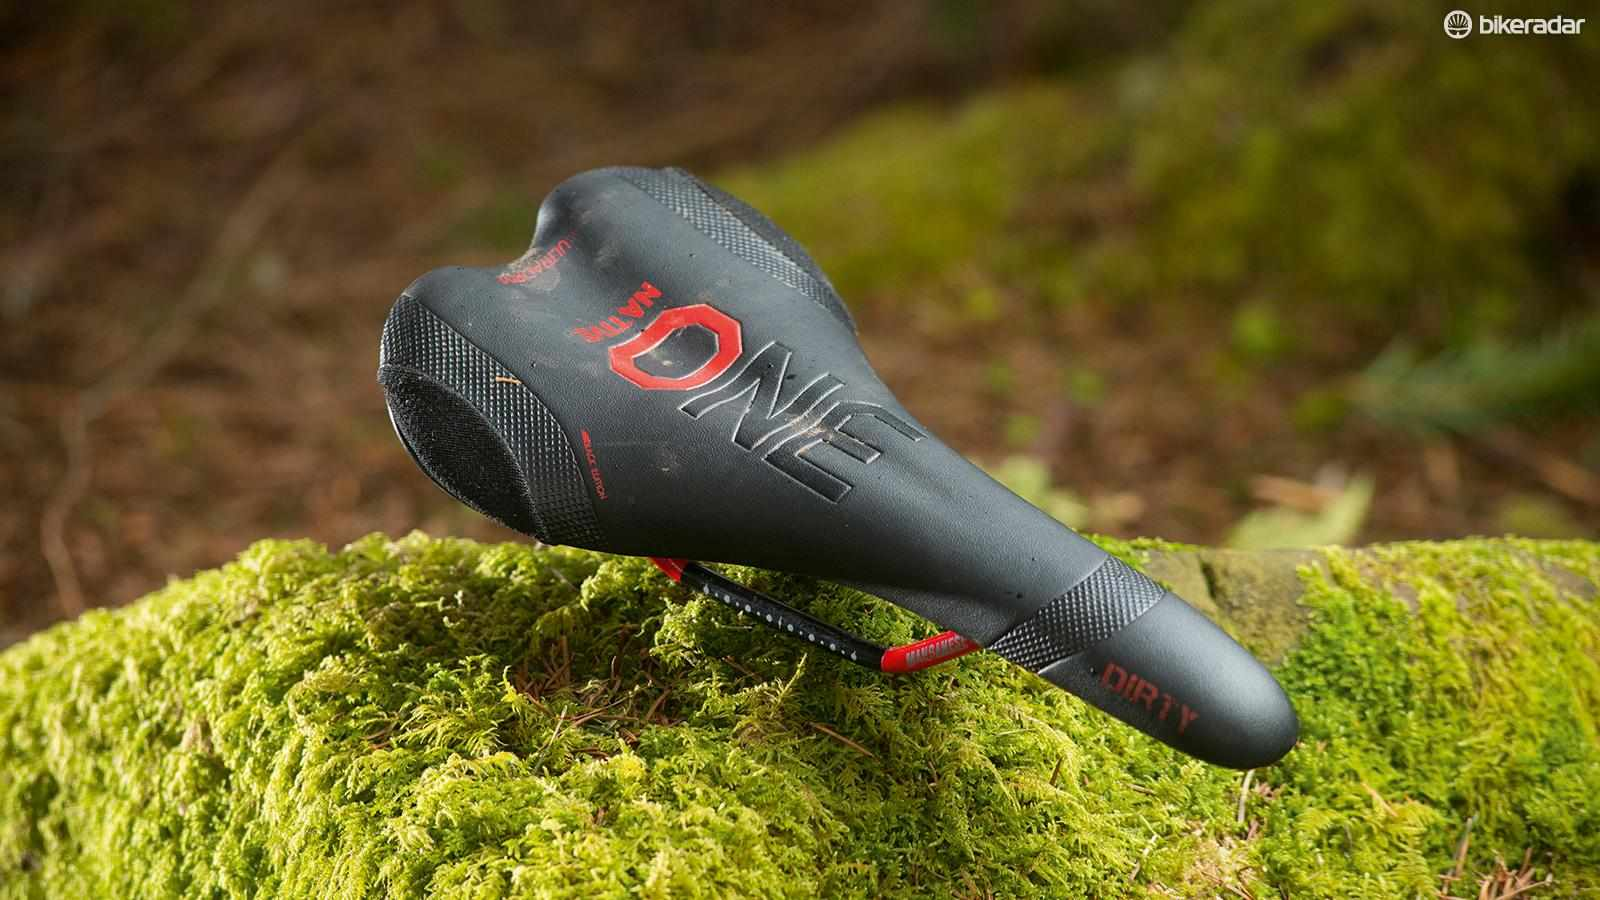 Dirty Native One BlackEdition saddle